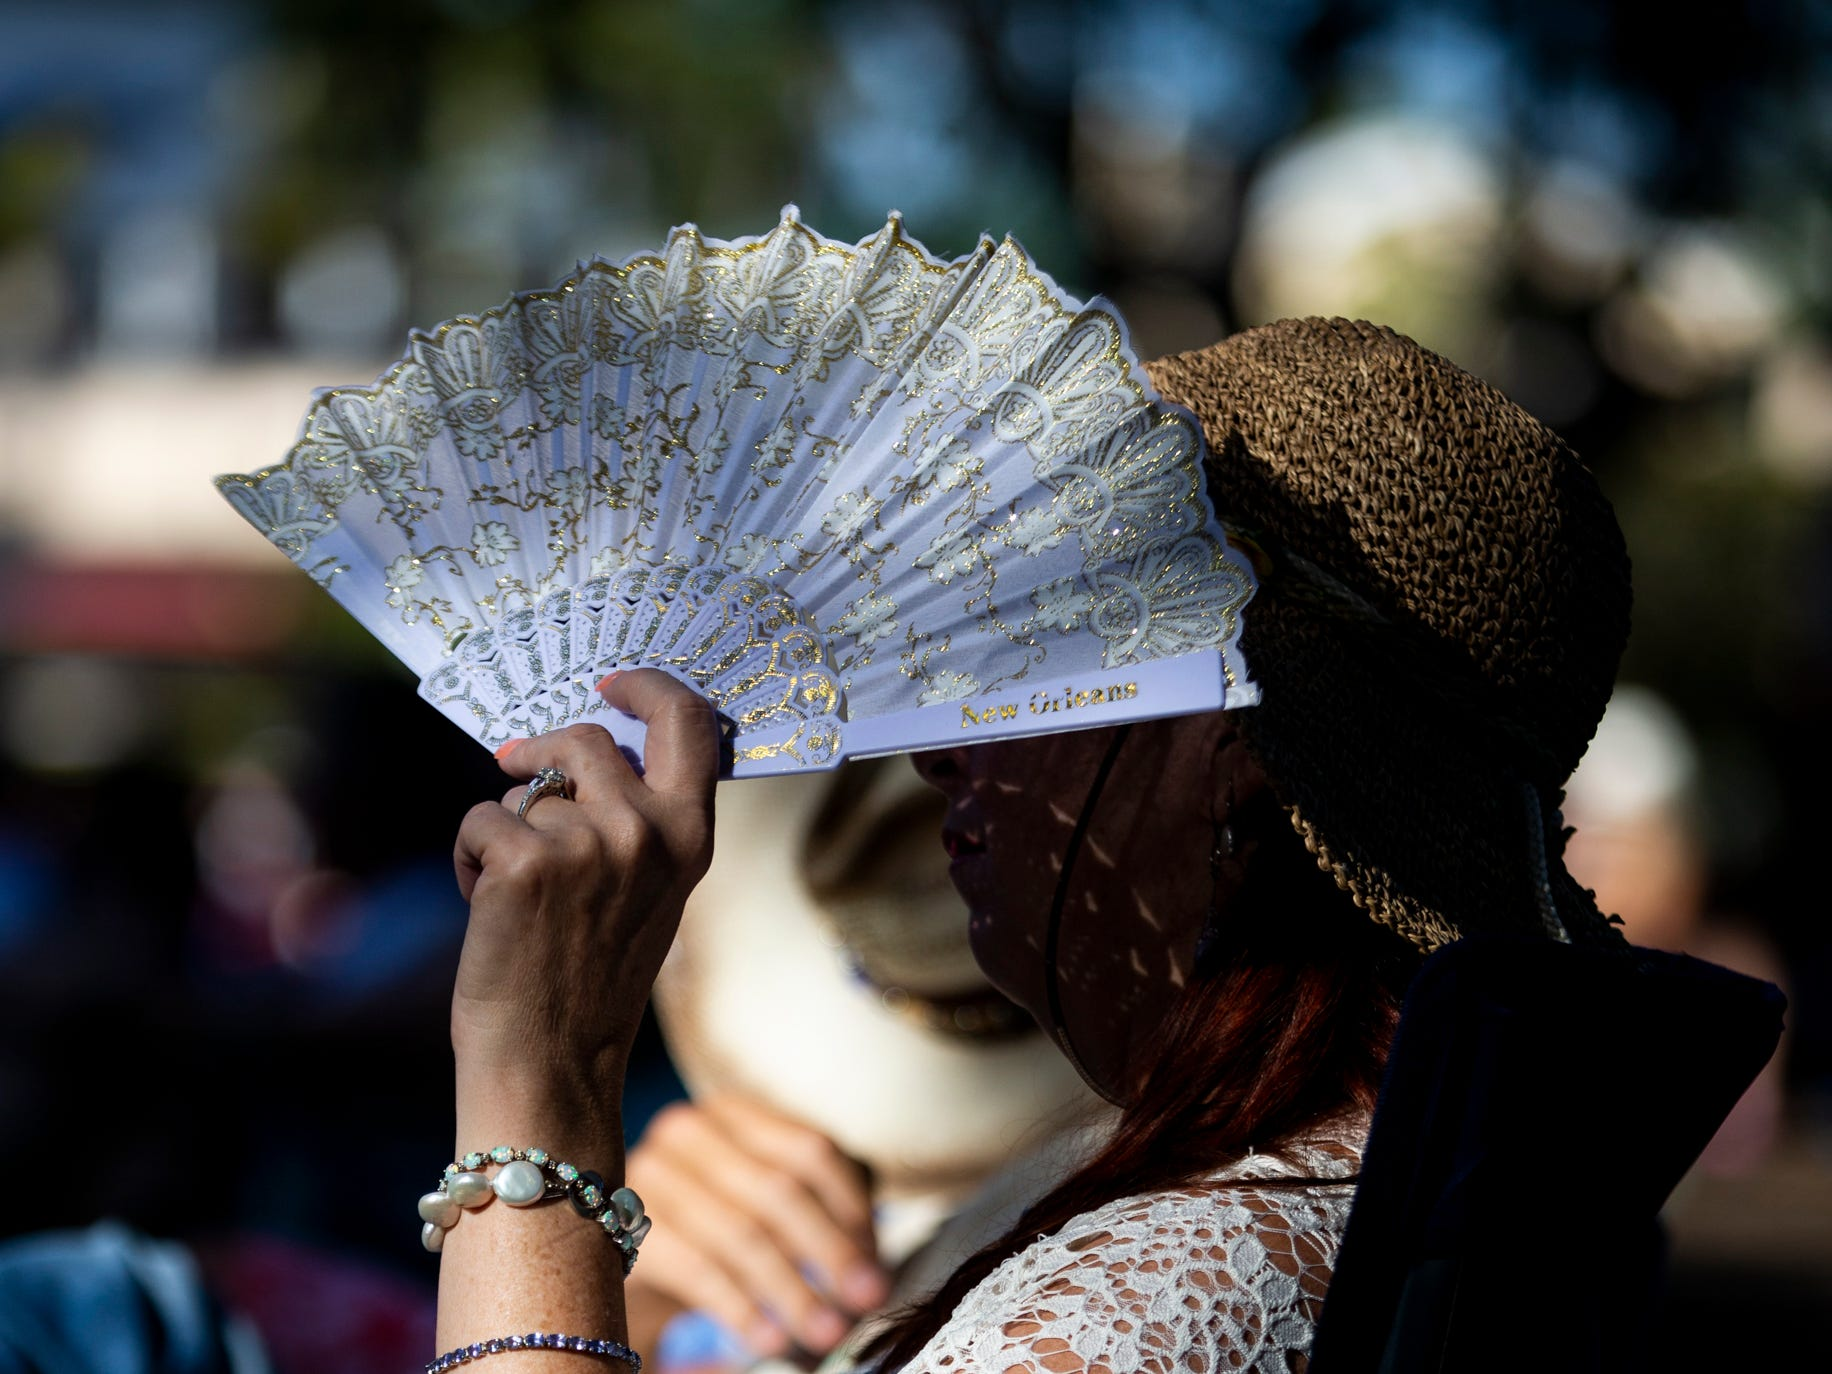 Karie Sams shields her face from the sun with a fan during the first annual Blues for the Blue, a benefit concert raising funds for The Fallen Officers and The Robert L. Zore Foundation, at Cambier Park in Naples on Sunday, March 31, 2019.